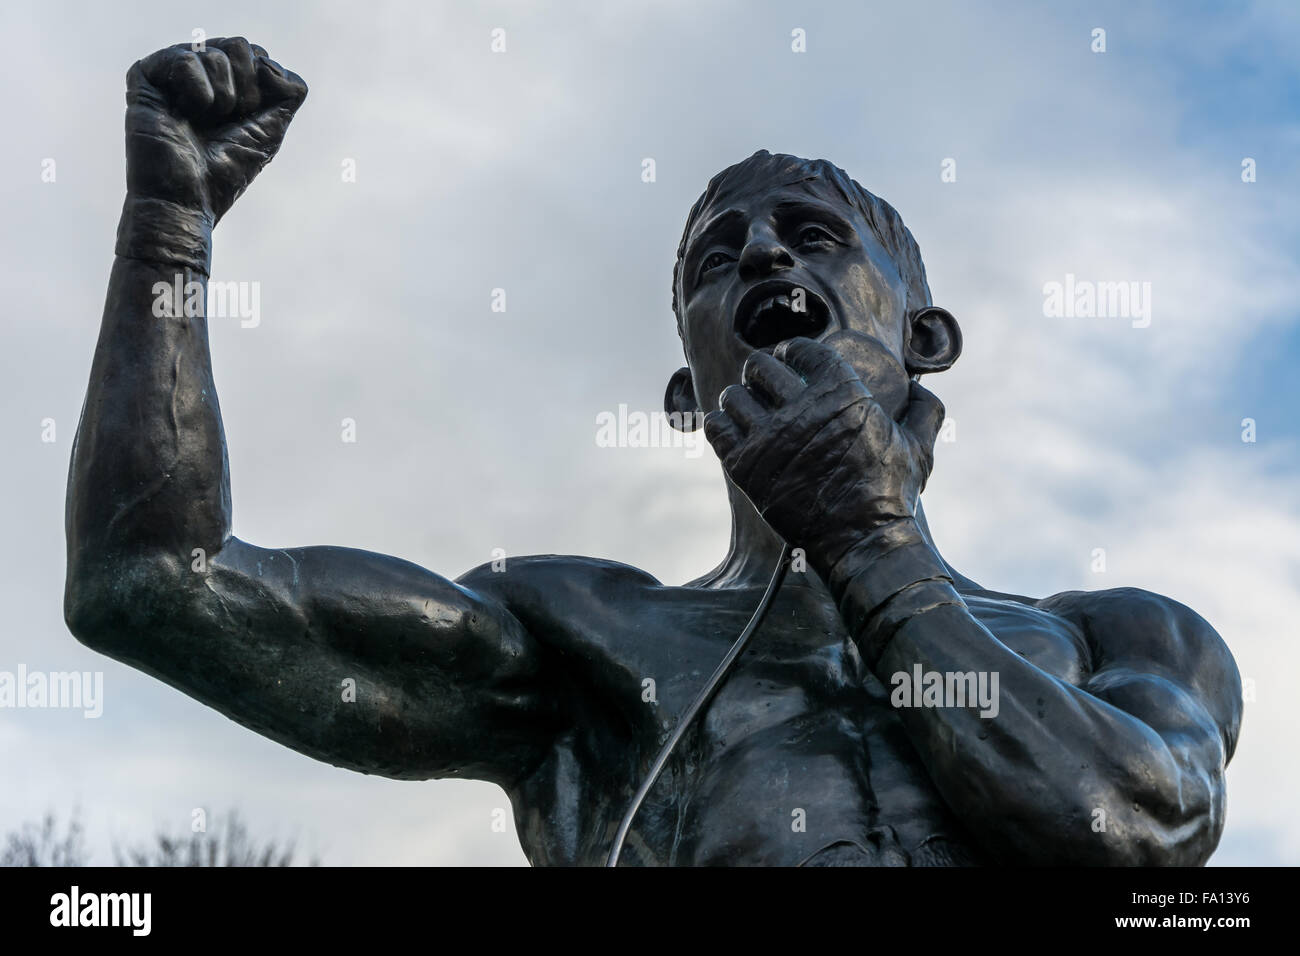 Statue unveiled in honour of boxing legend John 'Rinty' Monaghan in Belfast - Stock Image